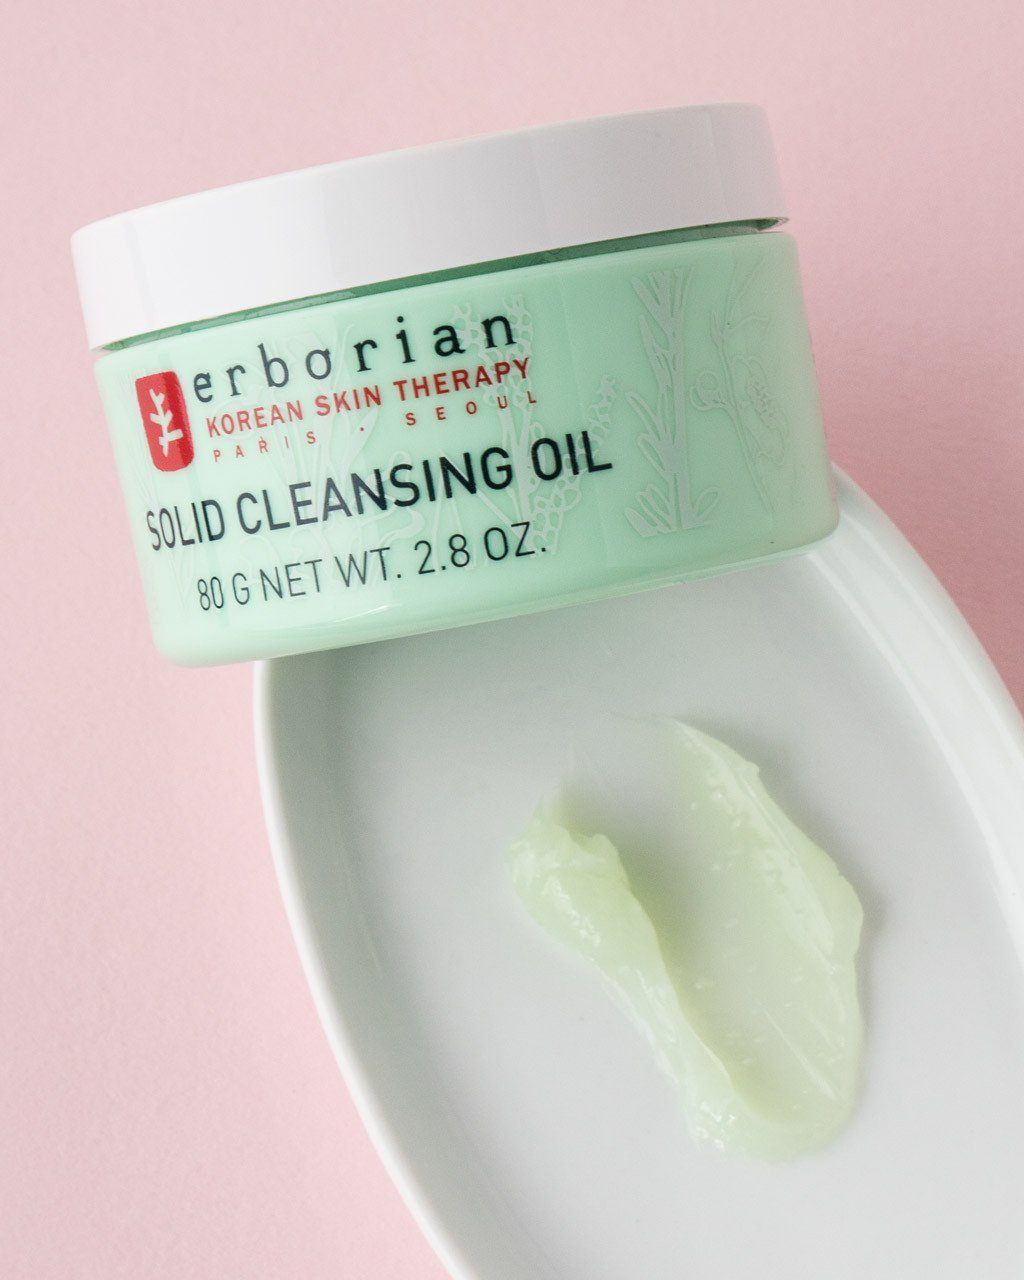 ERBORIAN Solid Cleansing Oil, cleanser, skincare, skin care